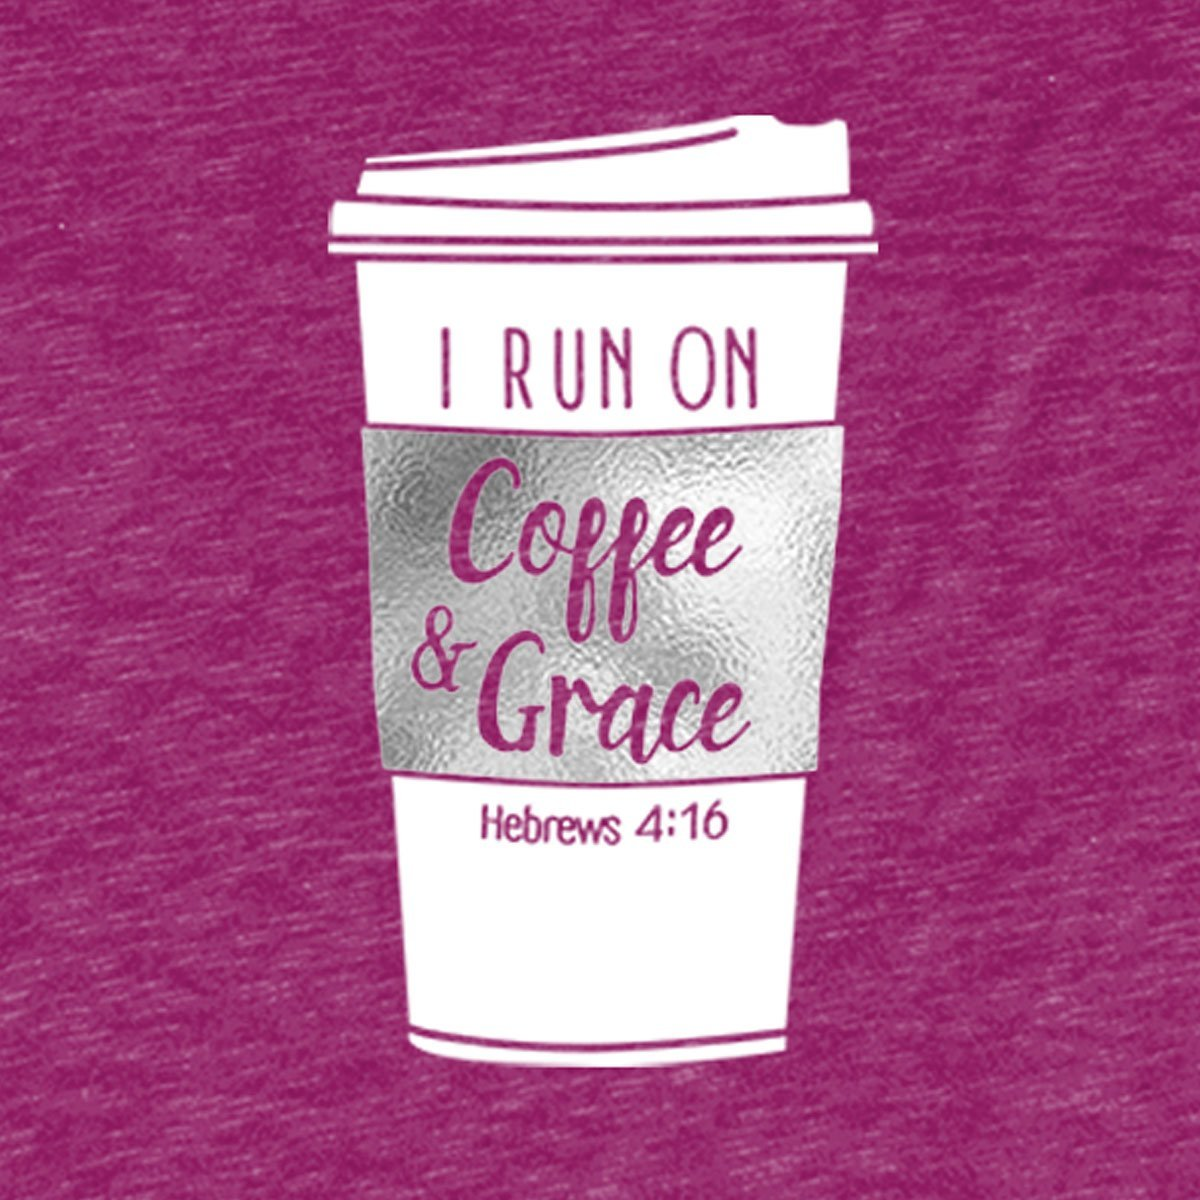 Coffee & Grace 2 Adult T-Shirt ™